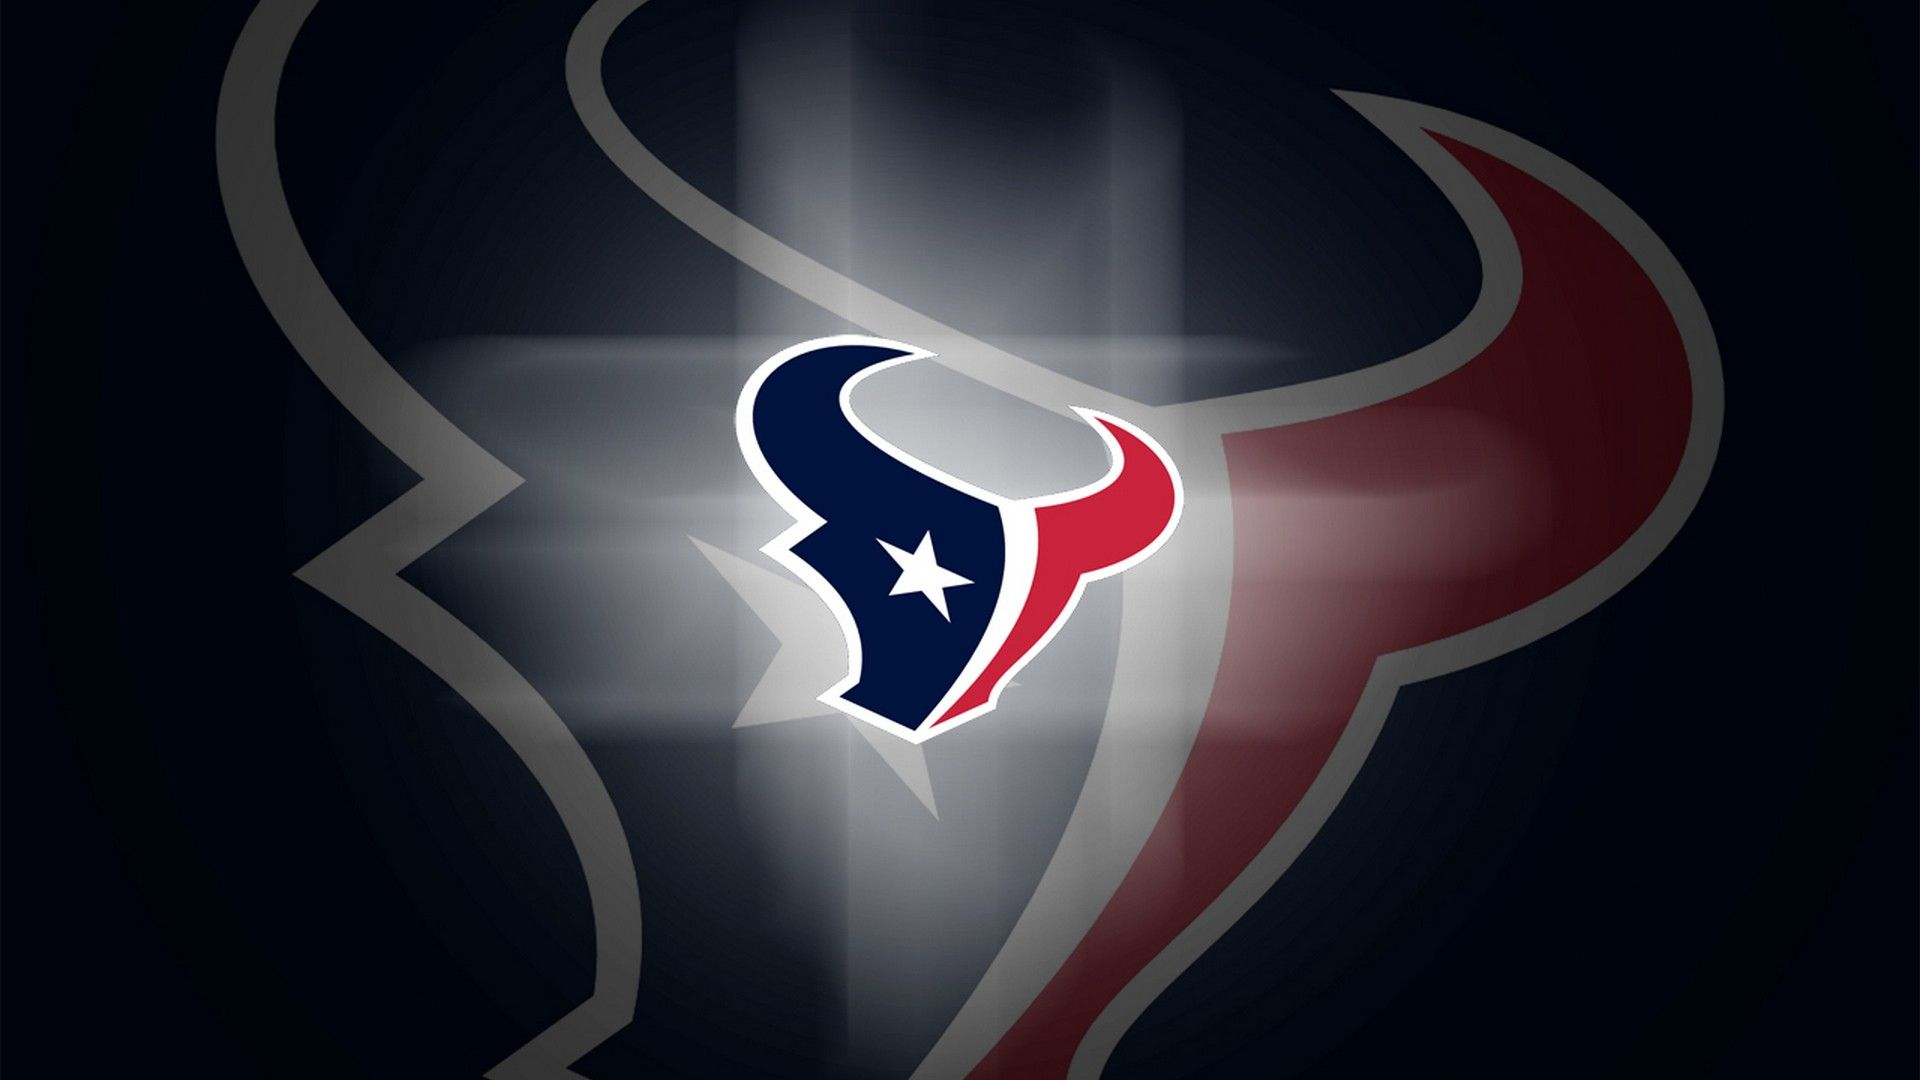 HD Desktop Wallpaper Houston Texans Wallpapers Football 1920x1080